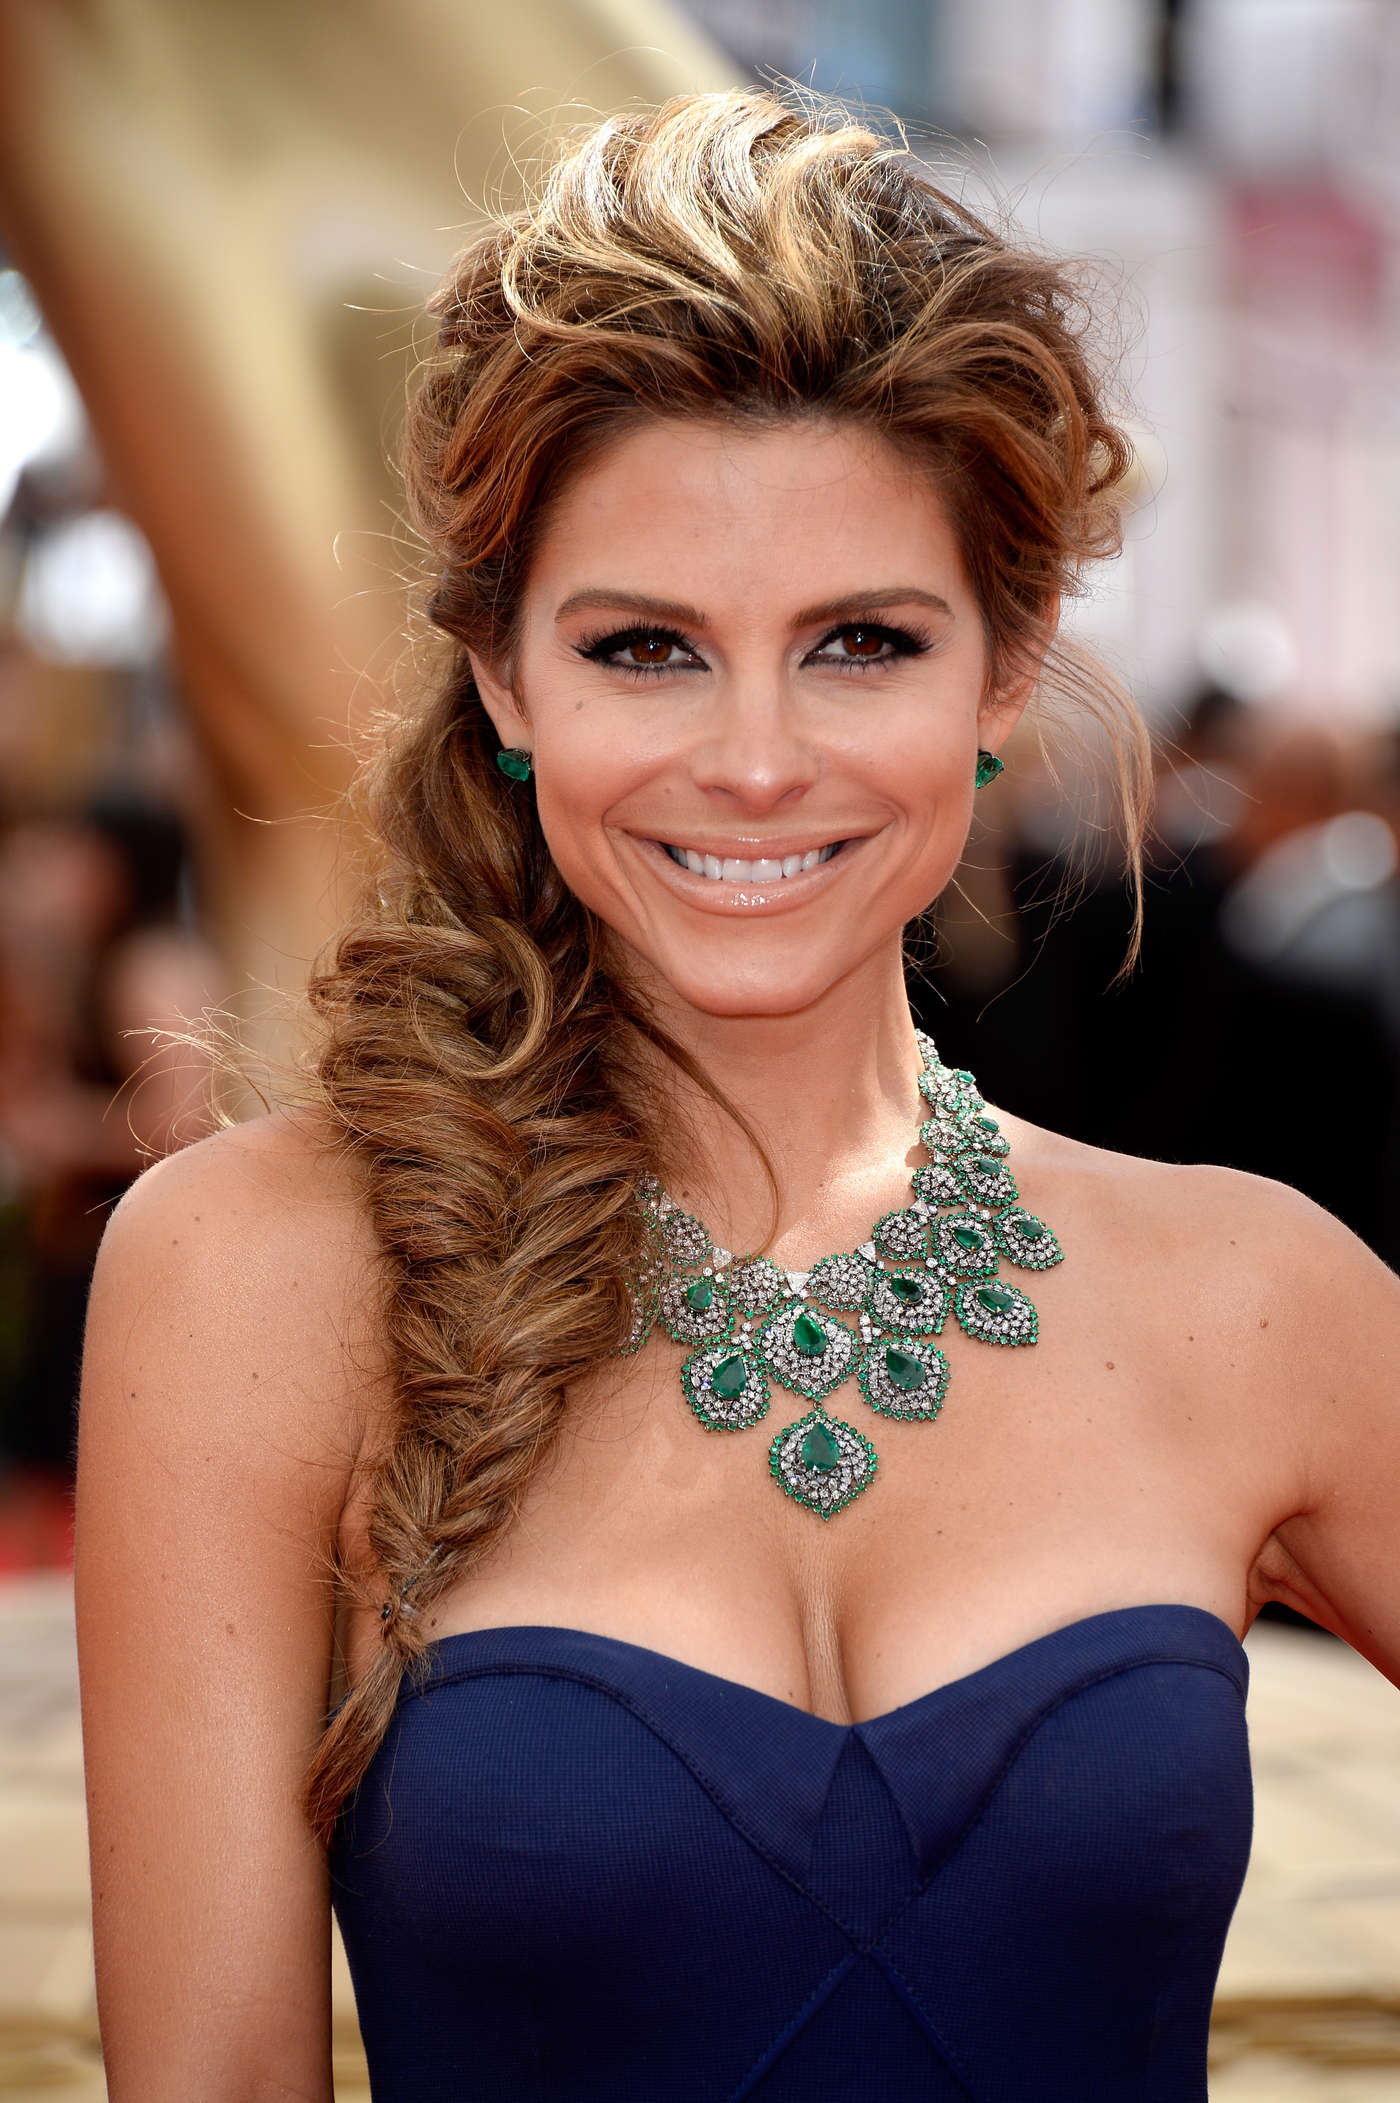 maria menounos vsmaria menounos vk, maria menounos 2016, maria menounos forum, maria menounos wiki, maria menounos howard stern show, maria menounos wrestling, maria menounos dancing with the stars, maria menounos jeans, maria menounos vs, maria menounos red dress, maria menounos smile, maria menounos superiorpics, maria menounos instagram, maria menounos boyfriend, maria menounos wwe, maria menounos leather pants, maria menounos 2014 oscars hair, maria menounos shoe size, maria menounos bellazon, maria menounos height and weight